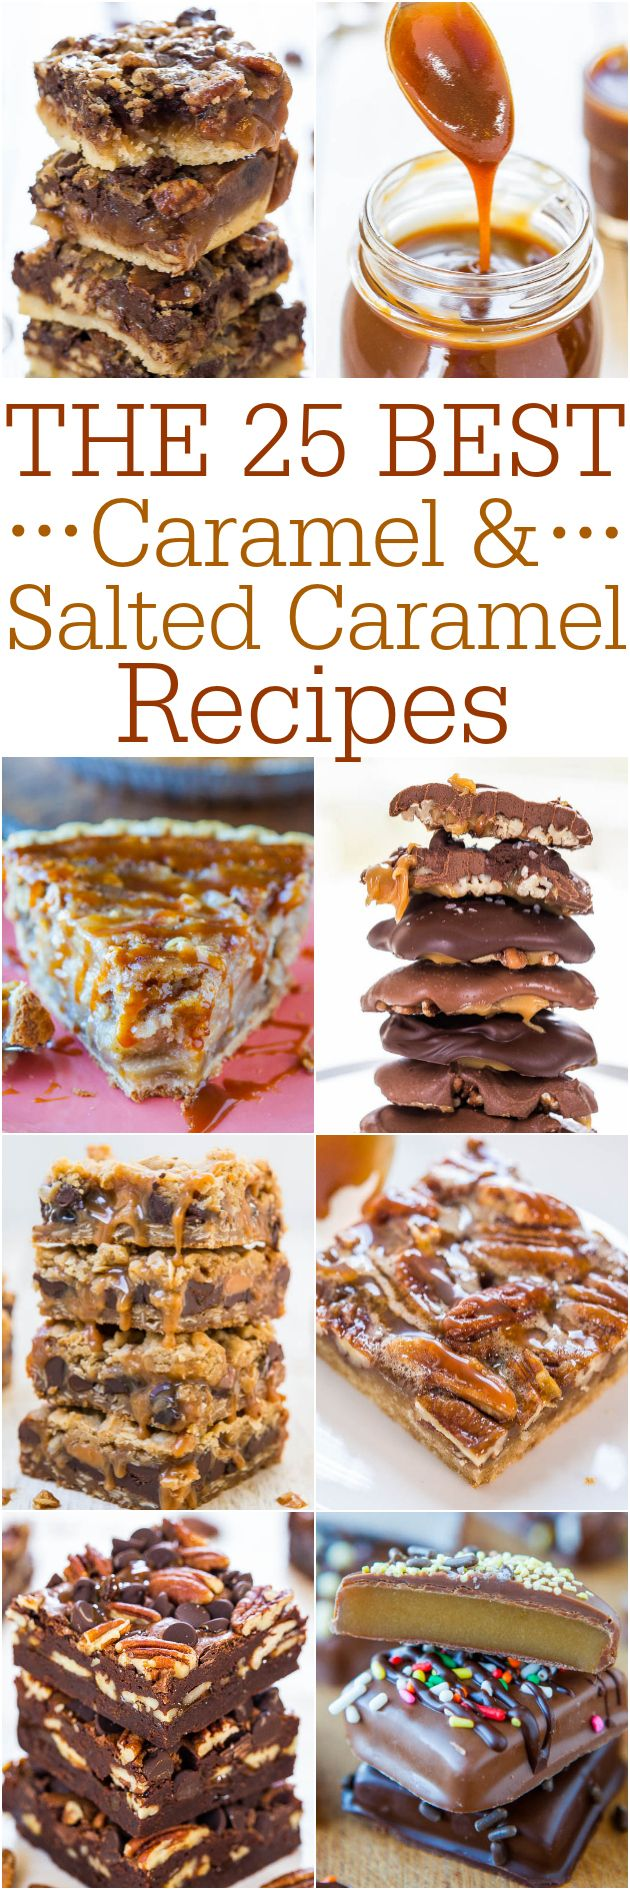 The 25 Best Caramel and Salted Caramel Recipes - The tried-and-true favorites are all here! If you need a caramel recipe, this collection has you covered!!